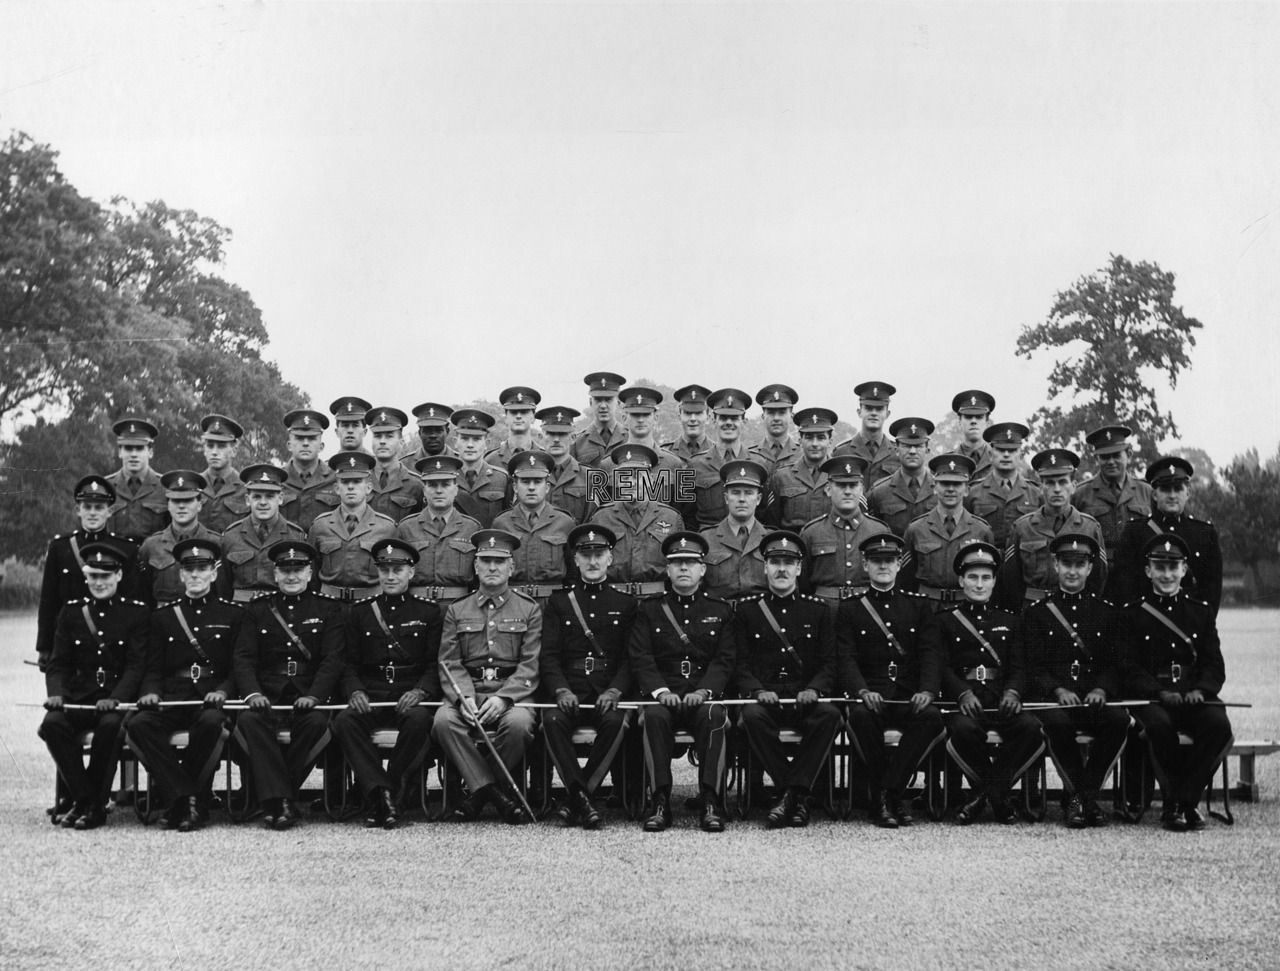 Junior Leaders' Unit, REME: Permanent Staff, 1960